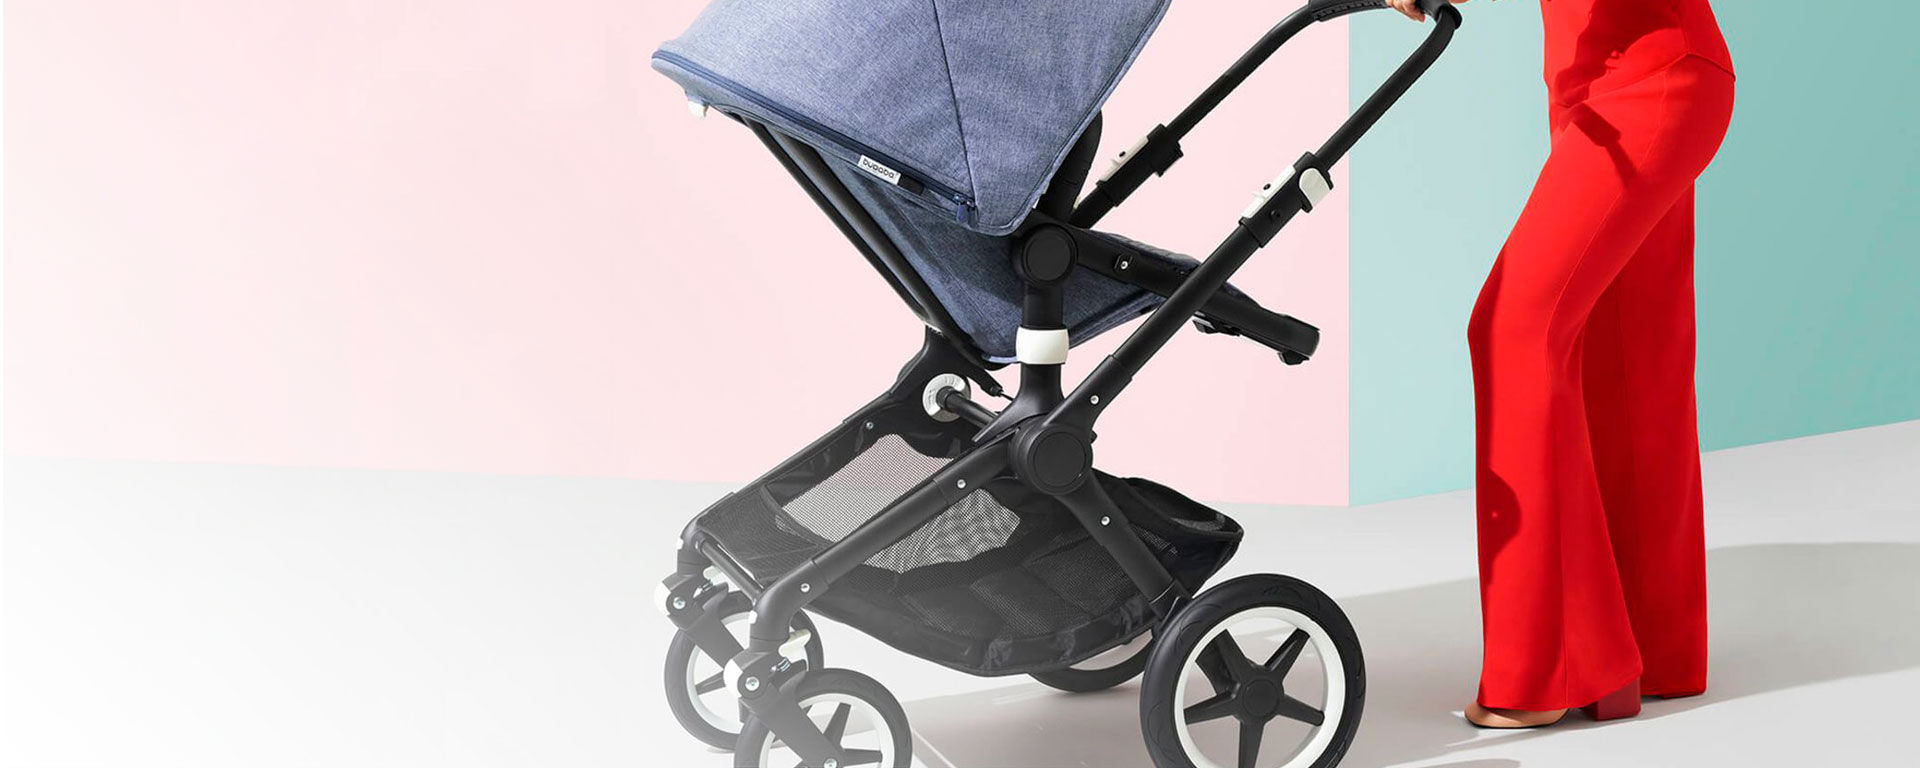 top-slider-bugaboo-fox-silla-bebe-gava-2018